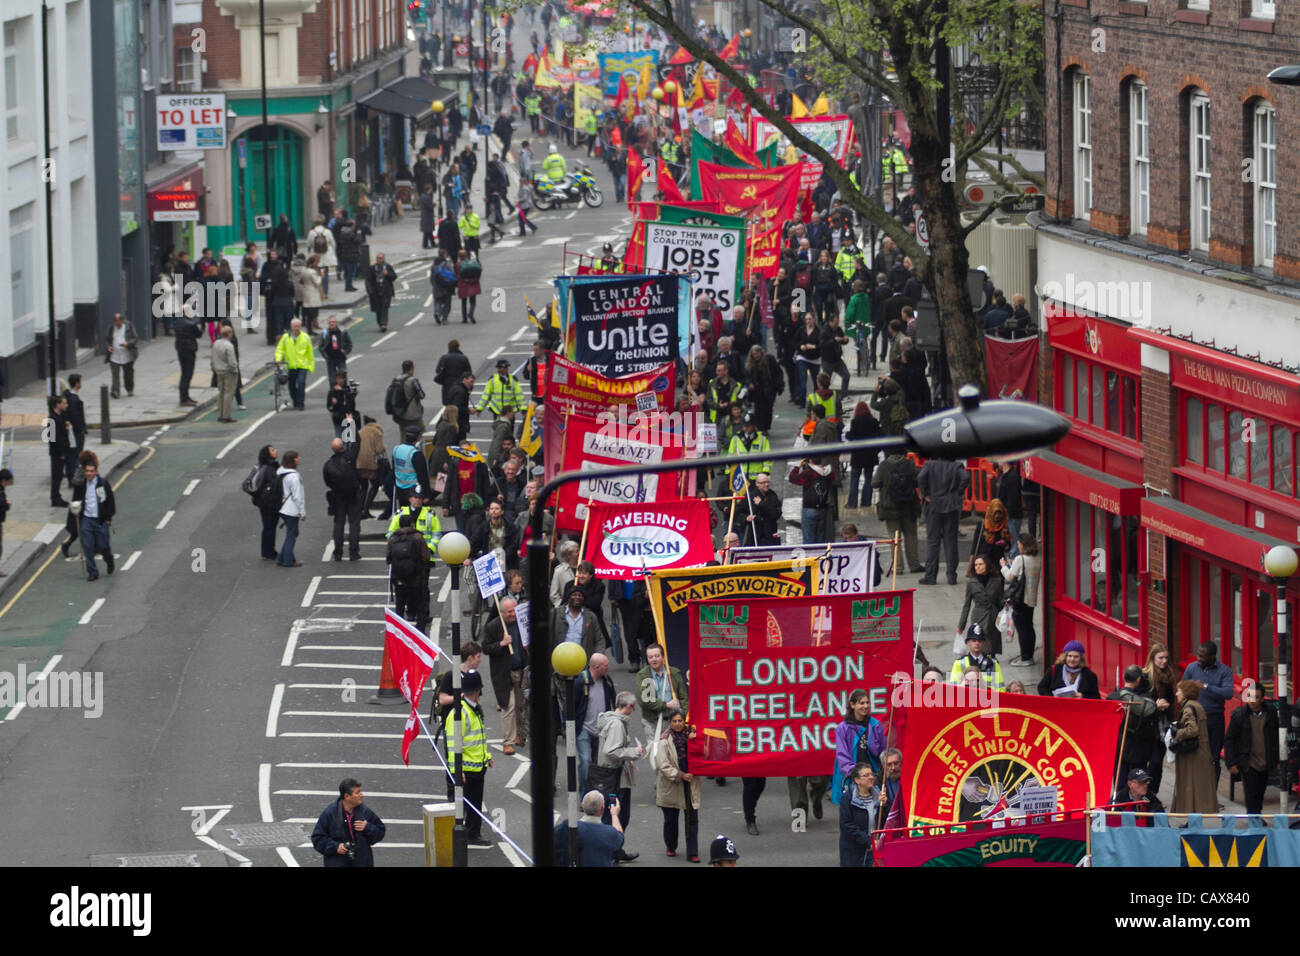 London, UK. 1st May 2012. Trade unionists, workers, union organizations and communities in London gathered for the - Stock Image